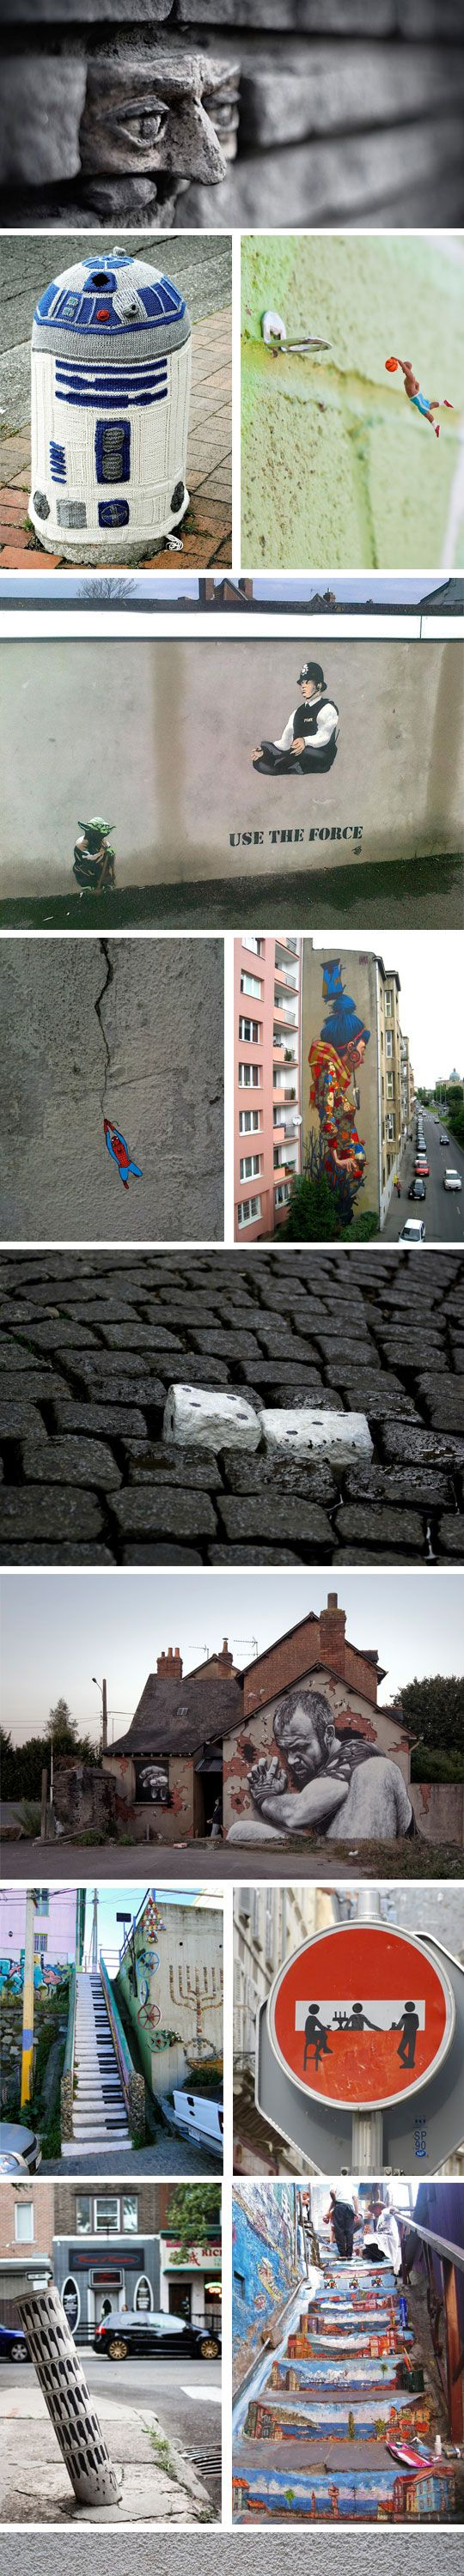 best street art images on pinterest urban art street art